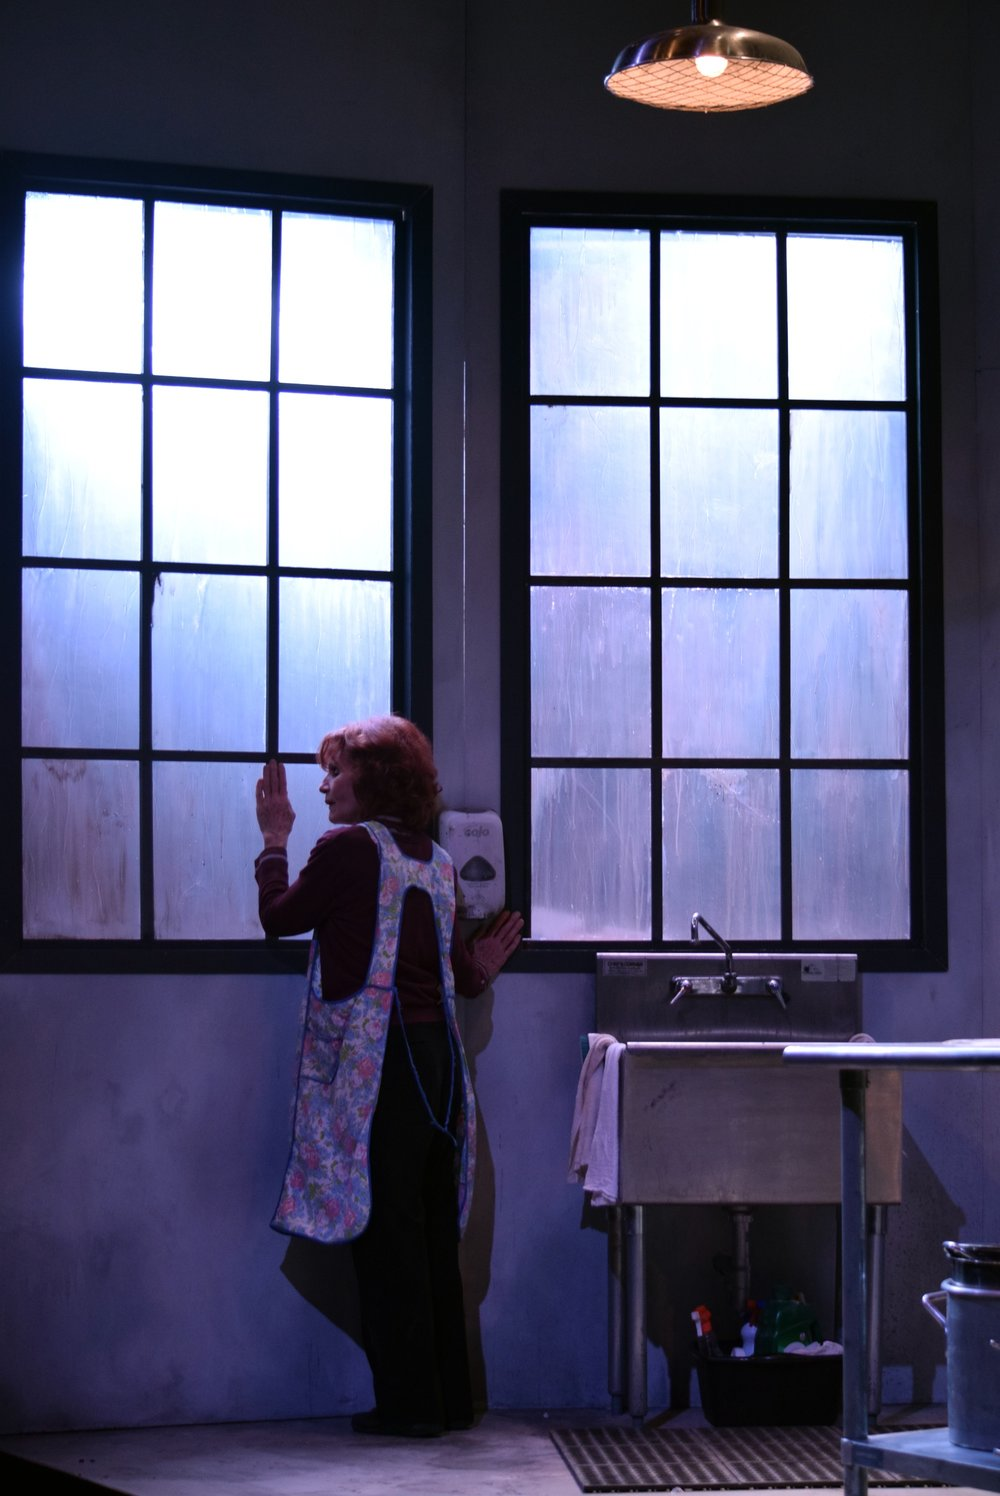 Apples in Winter   at Centenary Stage Company, Hackettstown, NJ, directed by Mikaela Kafka and featuring Colleen Smith-Wallnau. Photo by Chris Young